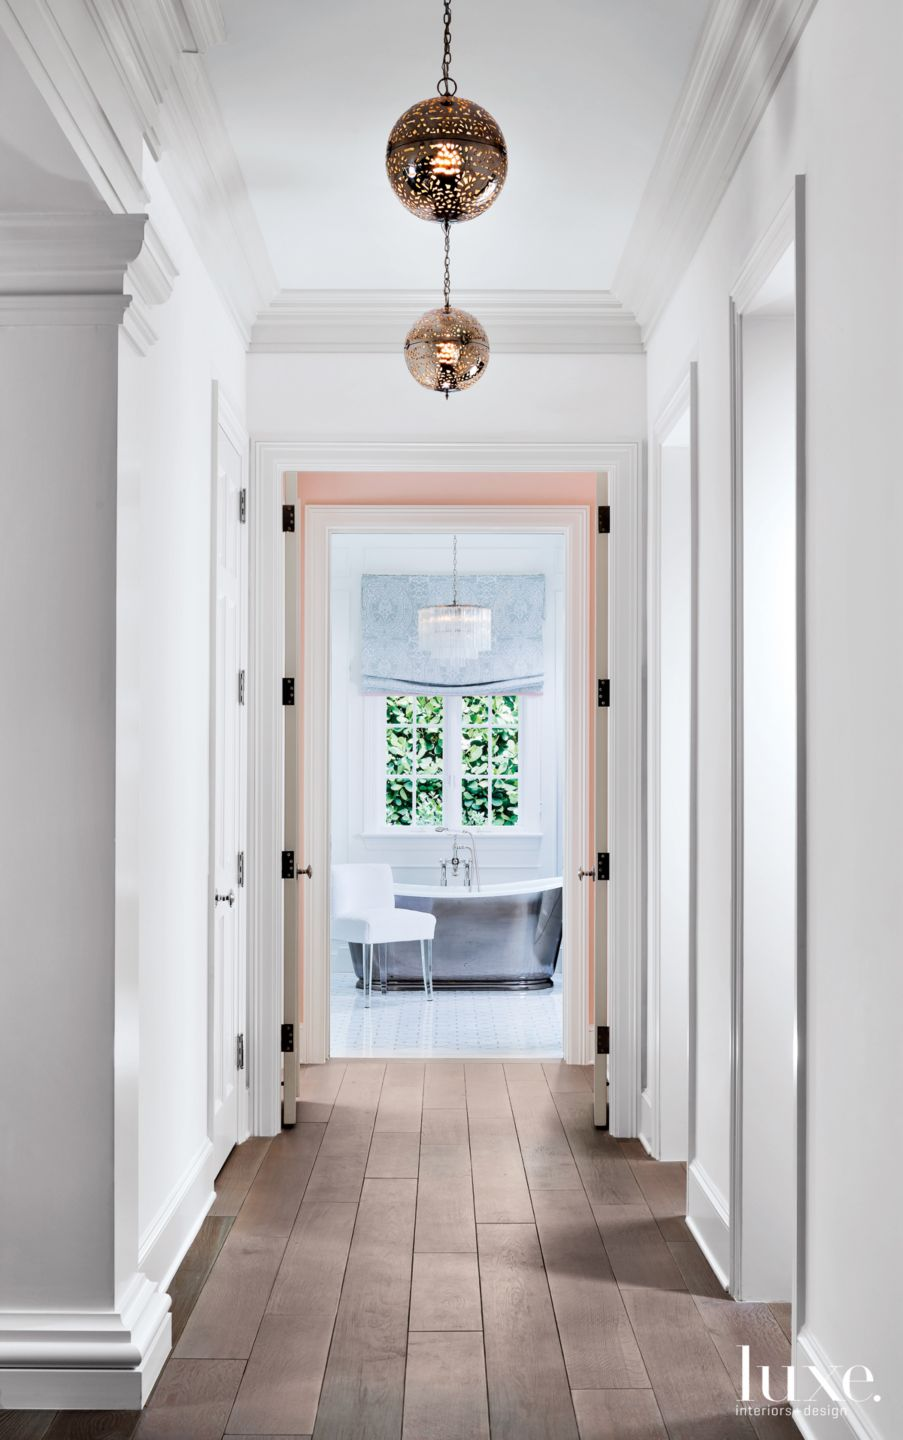 Contemporary White Hallway with Round Pendant Lights